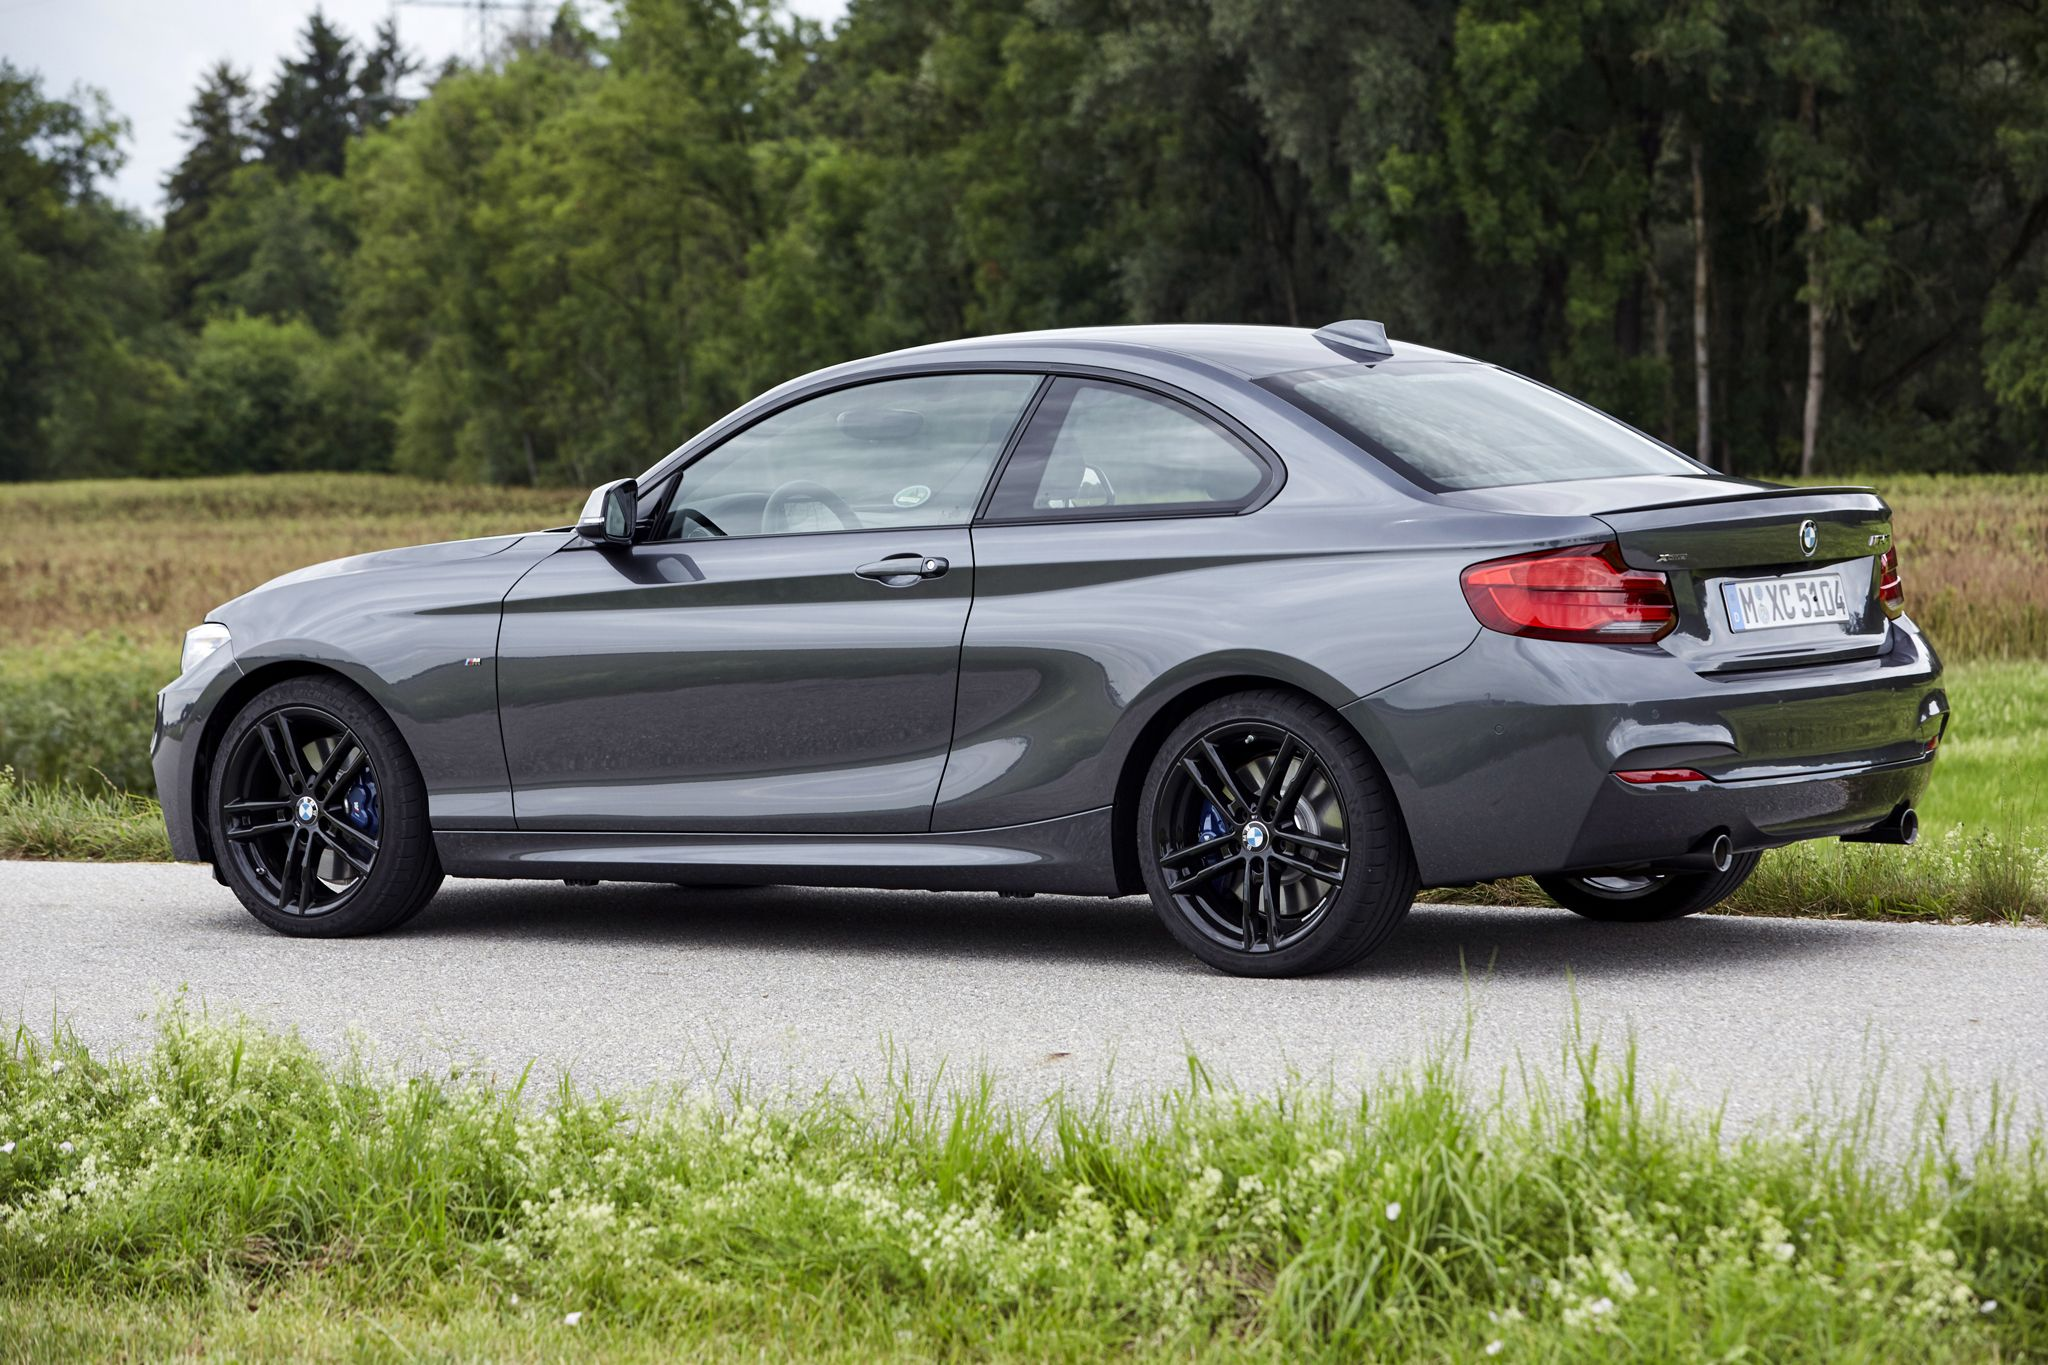 Pin By Lawrence Fonville On Bmw Bmw Bmw Wallpapers Best Luxury Cars